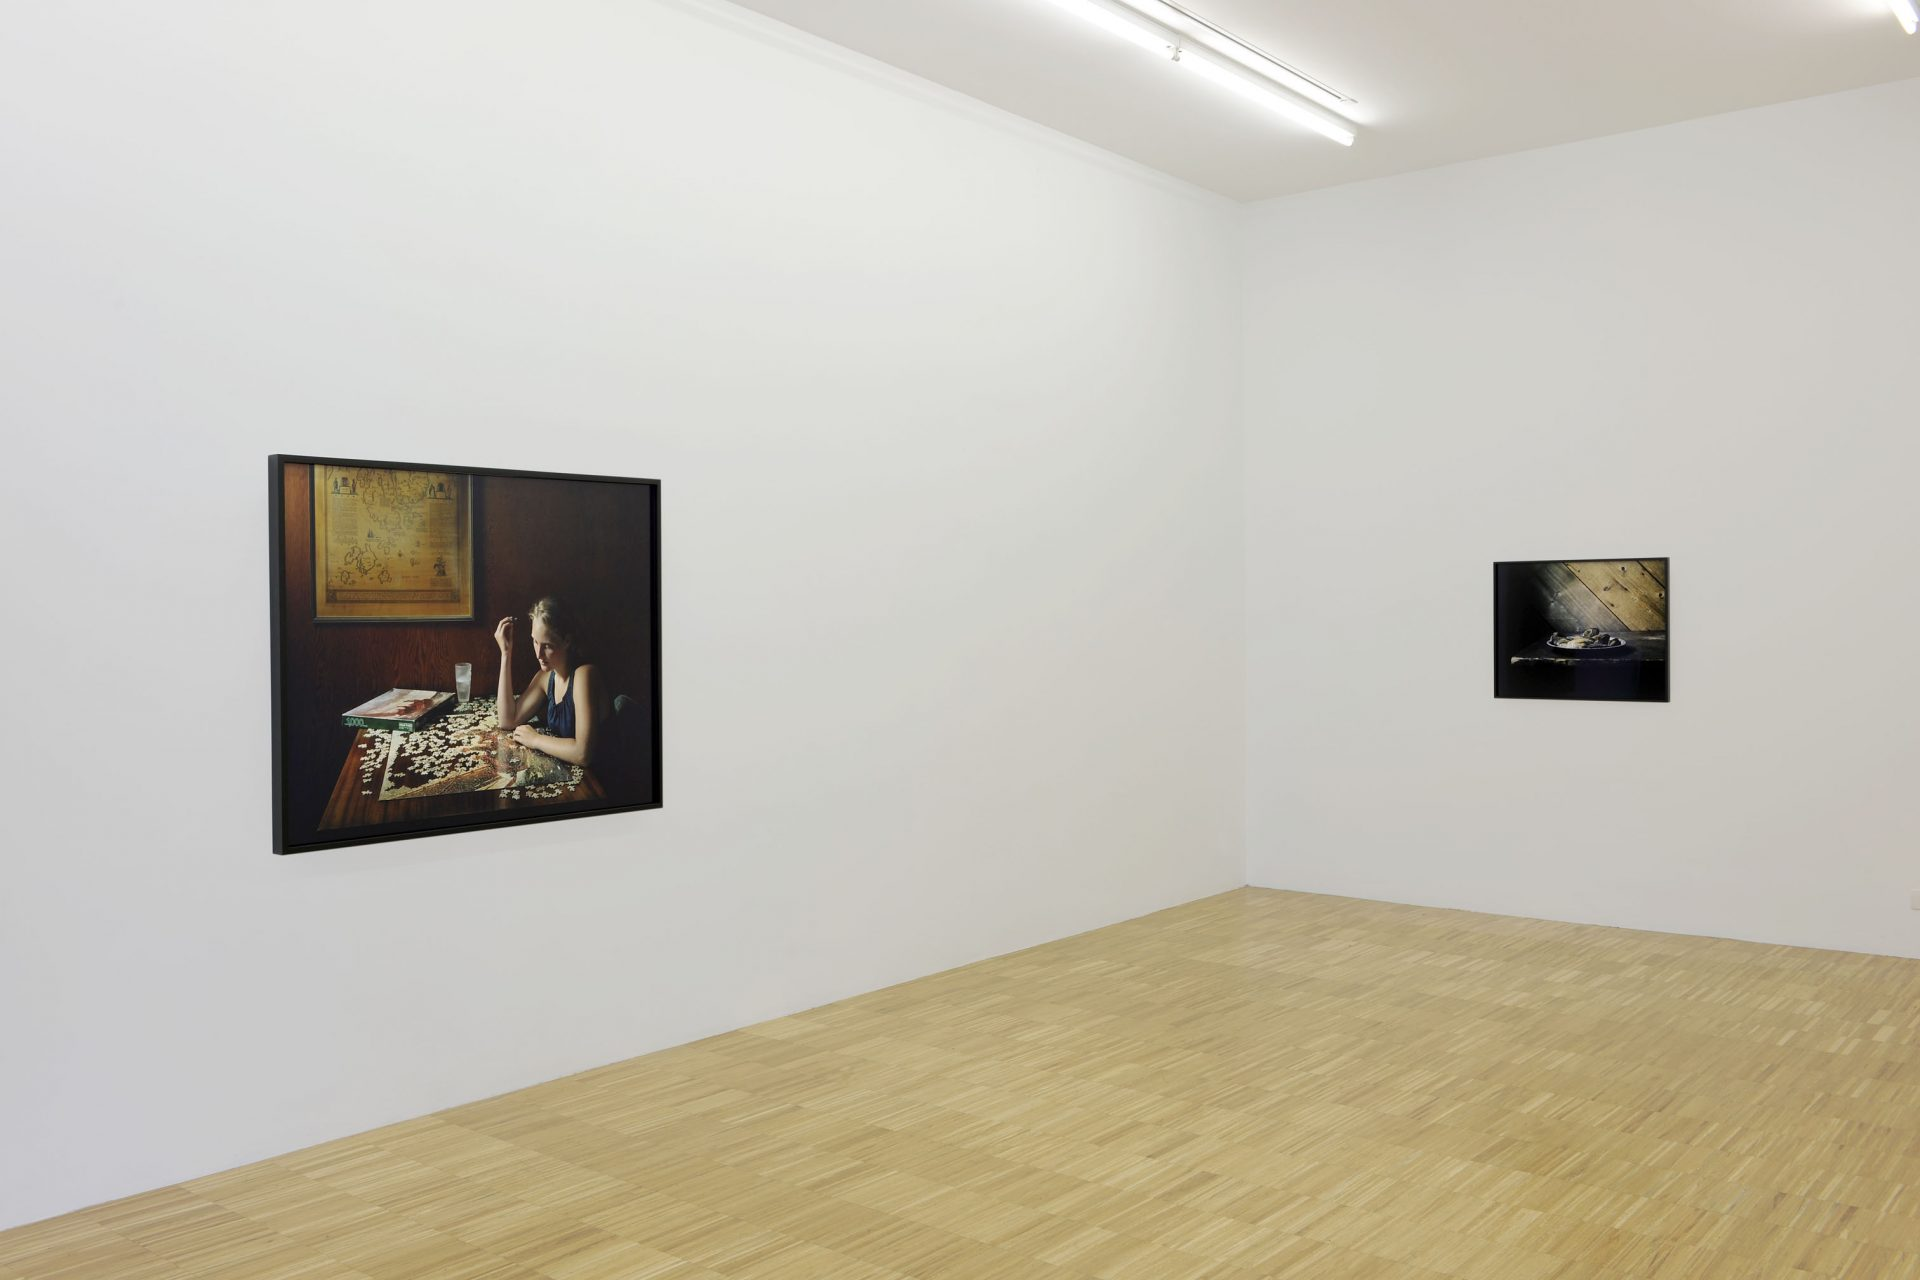 Sharon Lockhart - installation view at Jan Mot, 2010